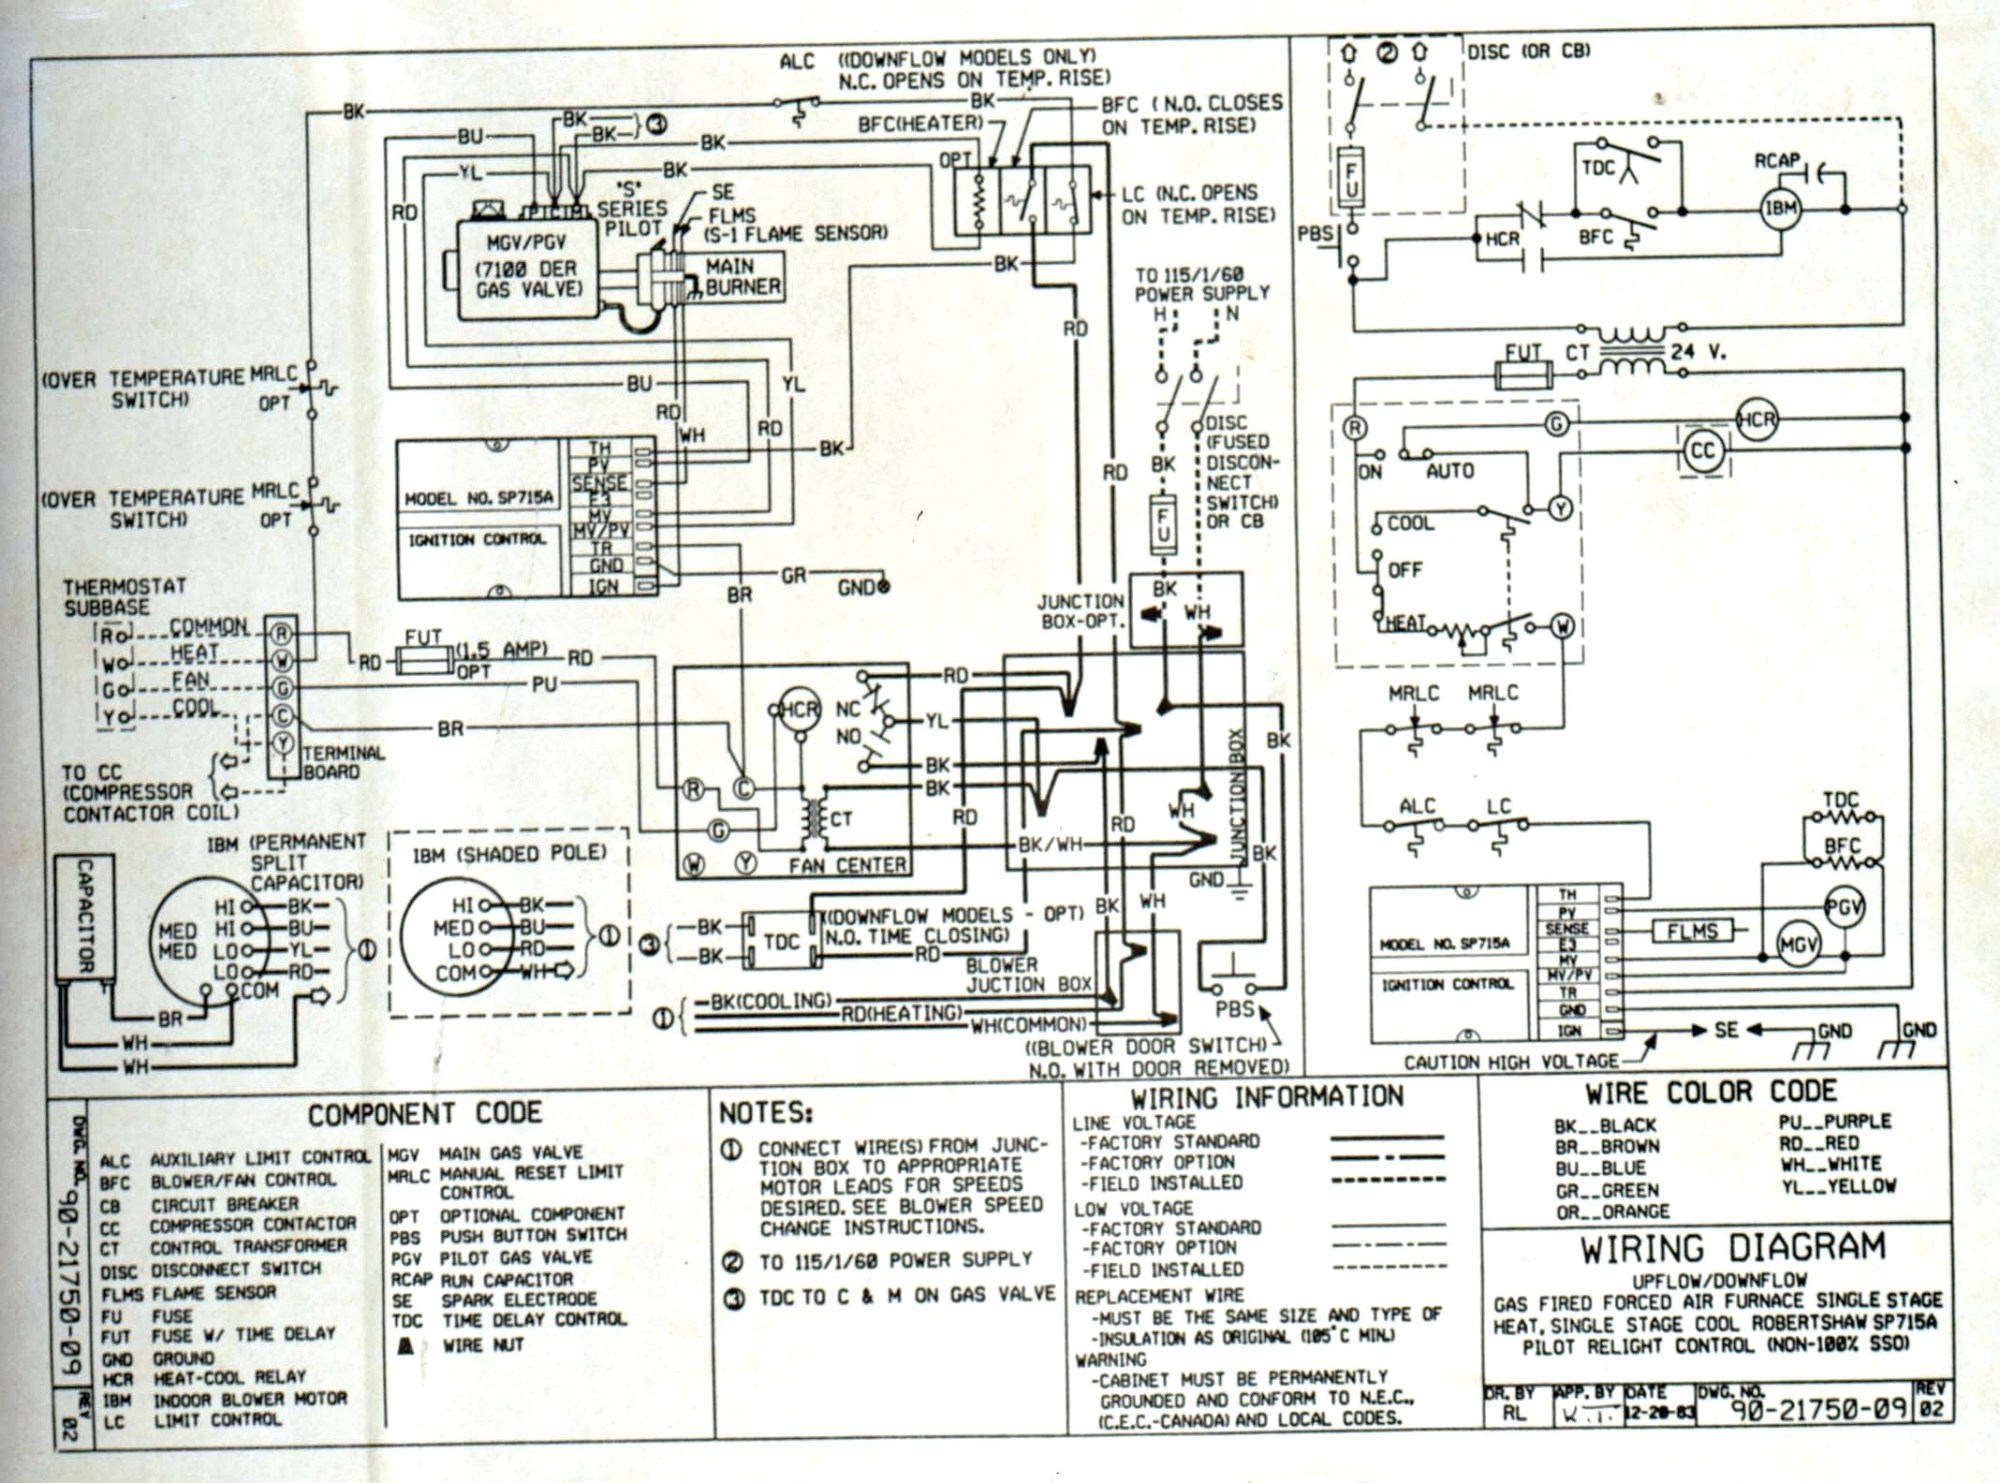 hight resolution of luxaire wiring schematic xx120 wiring diagram basic luxaire tm9v08c 16mp11a wiring schematic